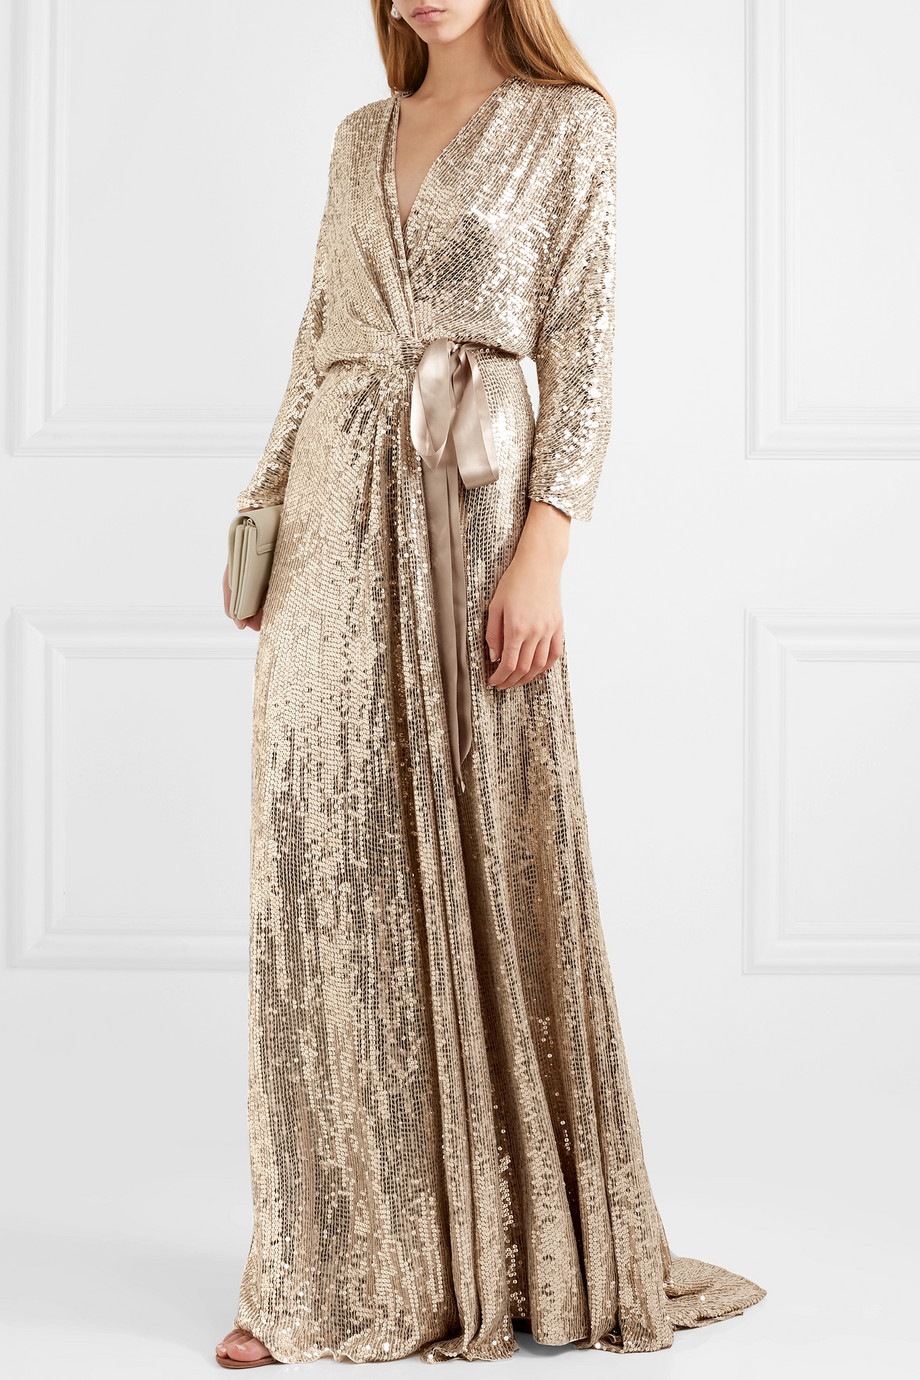 JENNY PACKHAM Satin-trimmed sequined silk wrap gown - what to wear to a new year's party